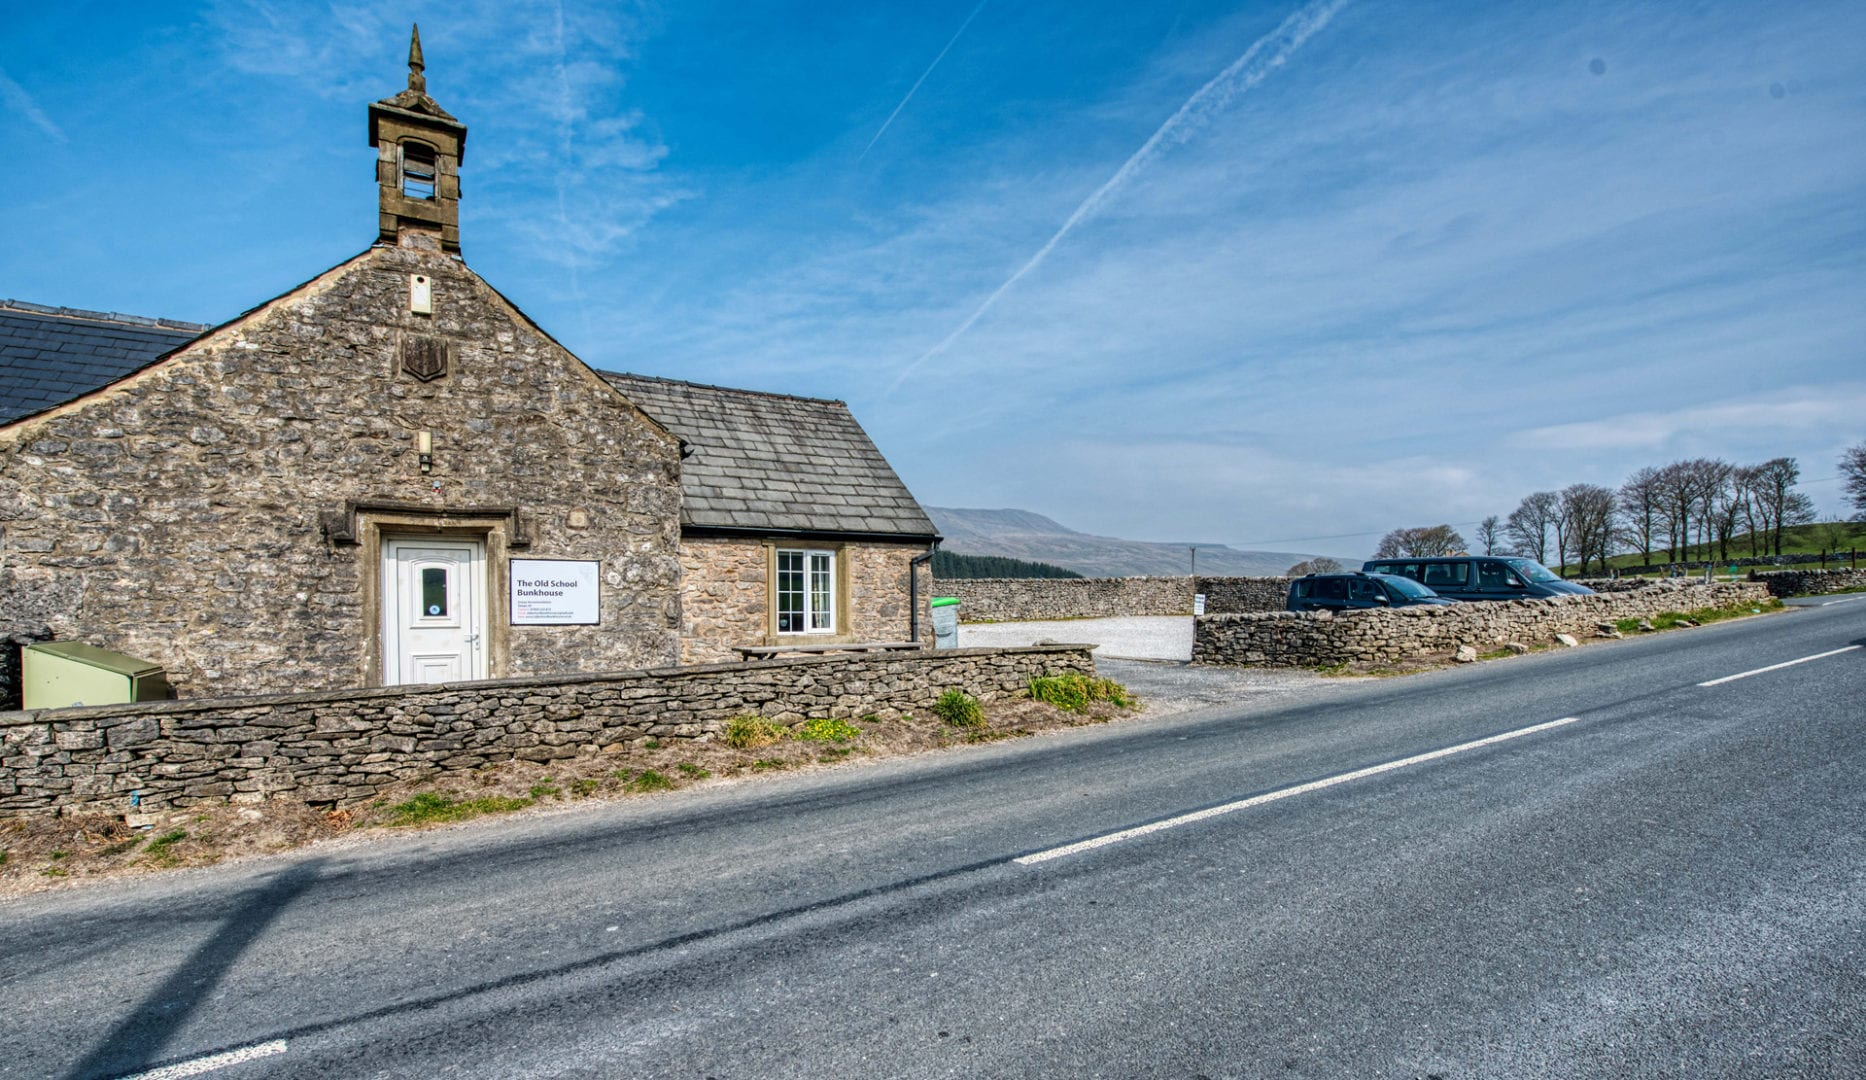 Old School Bunkhouse, Chapel le Dale on the Yorkshire Three Peaks and Dales High Way routes